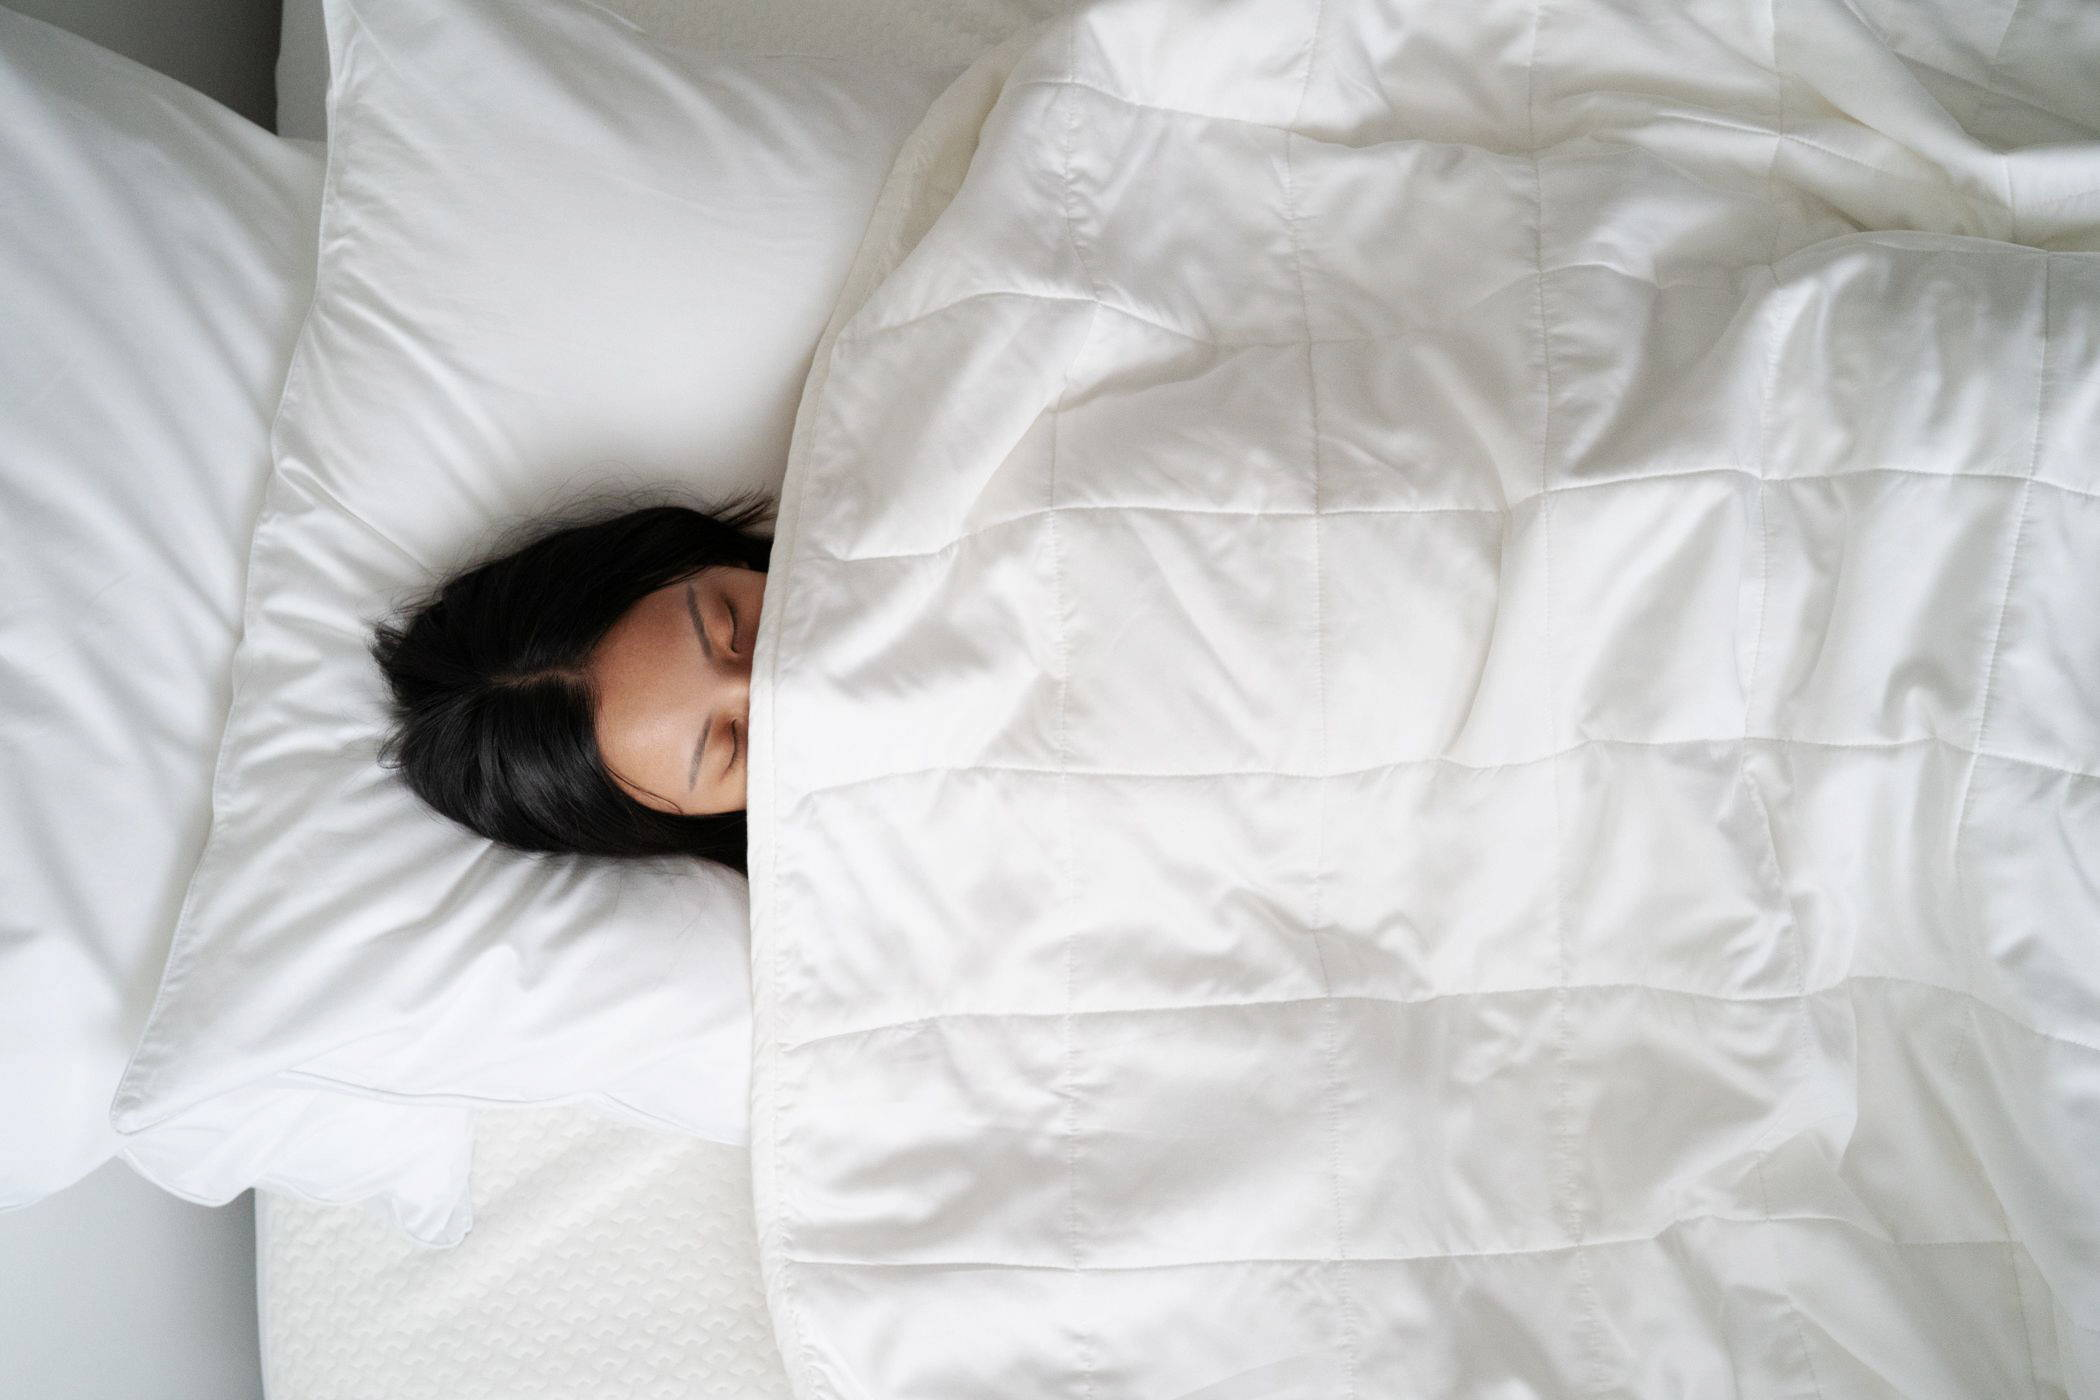 Woman lying on her bed under a blanket, covering her face